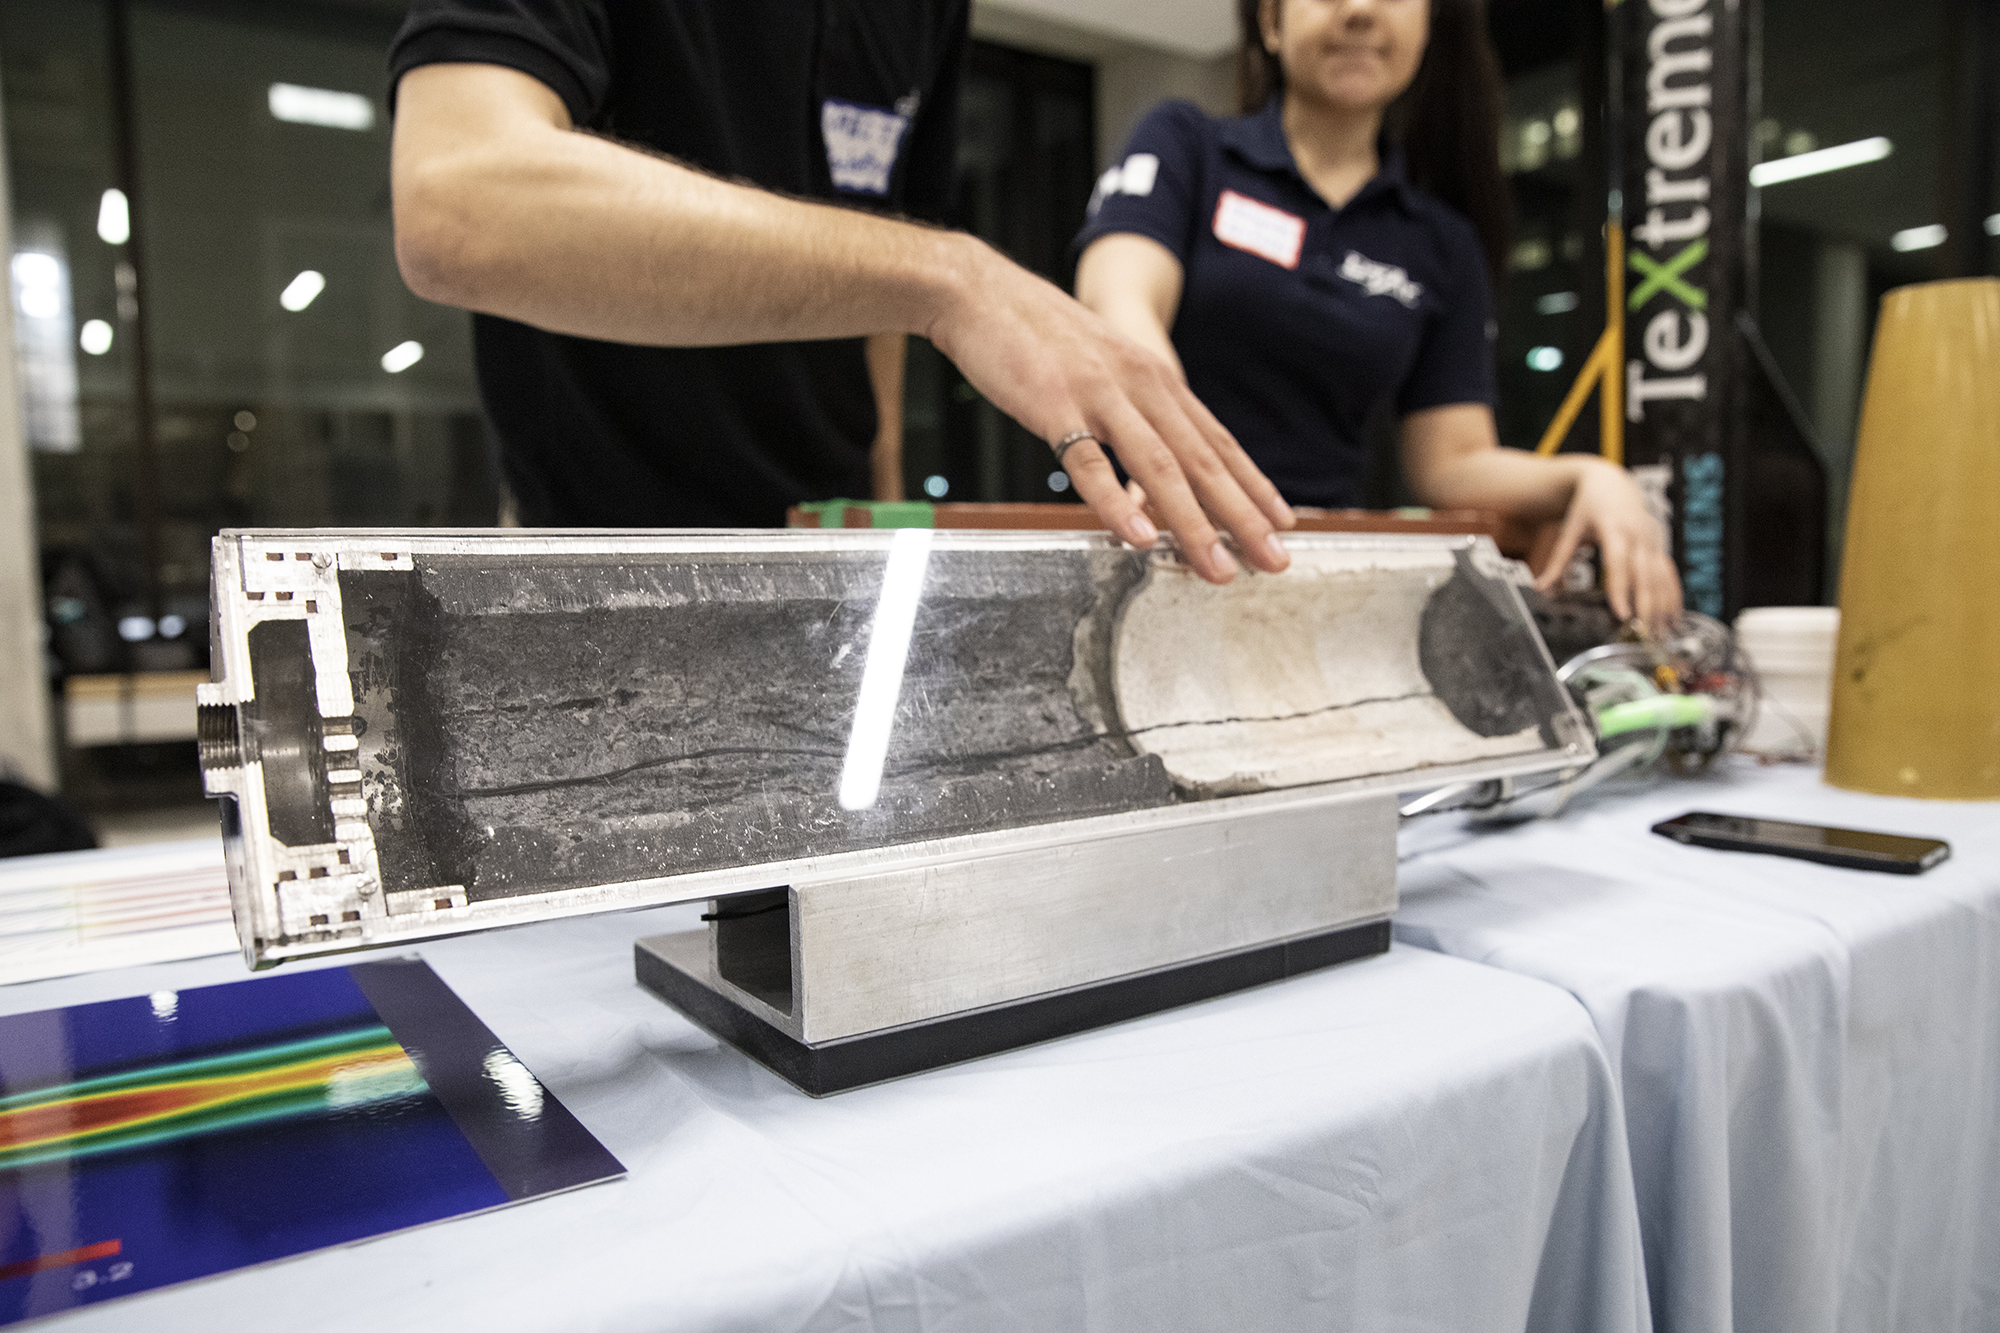 A cross-section of a hybrid engine fuel core lets students visualize the inside of a rocket. (Credit: Erica Rae Chong)